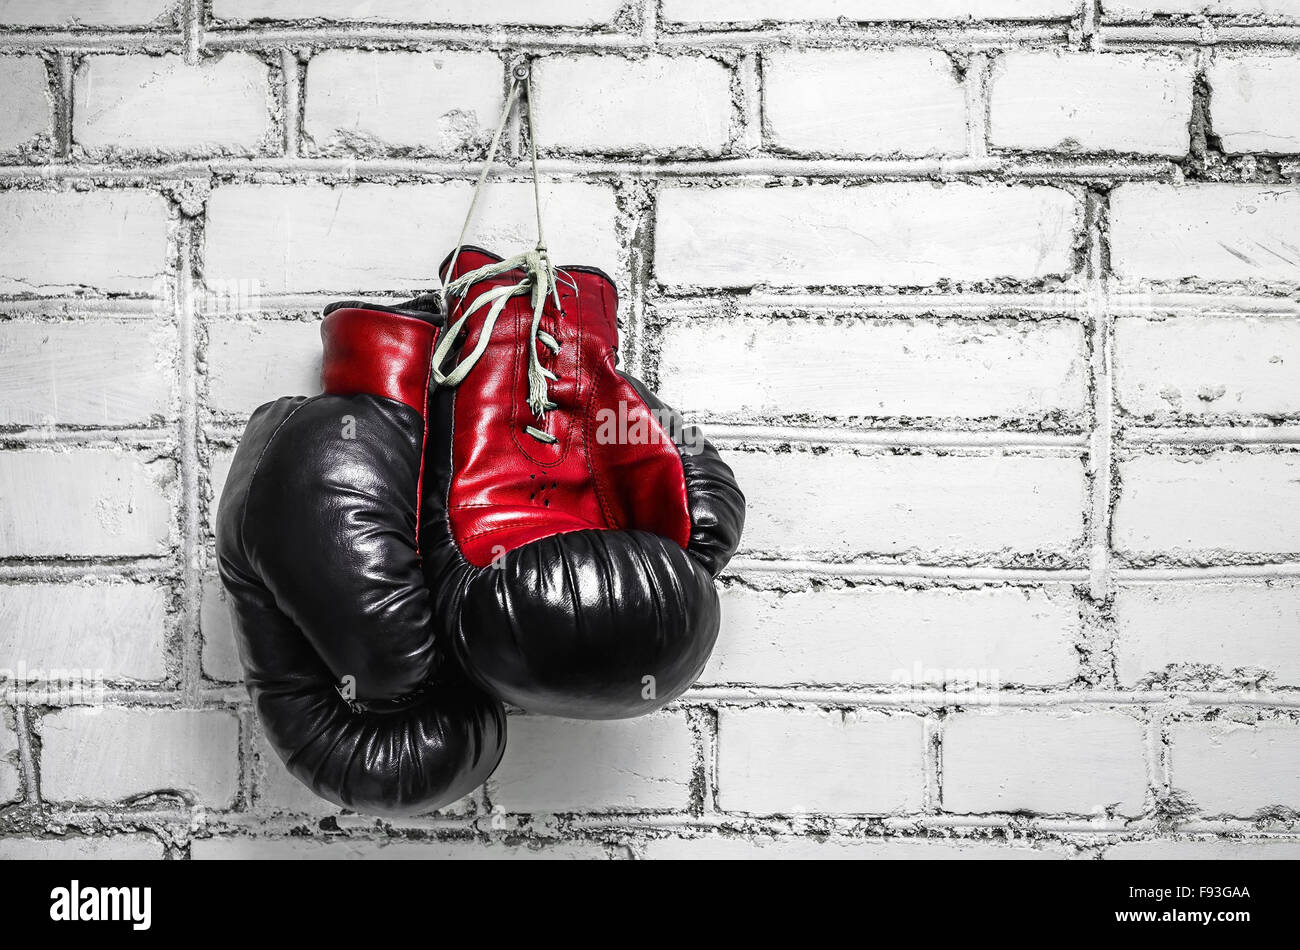 A pair of old boxing gloves hanging against a white brick wall. - Stock Image